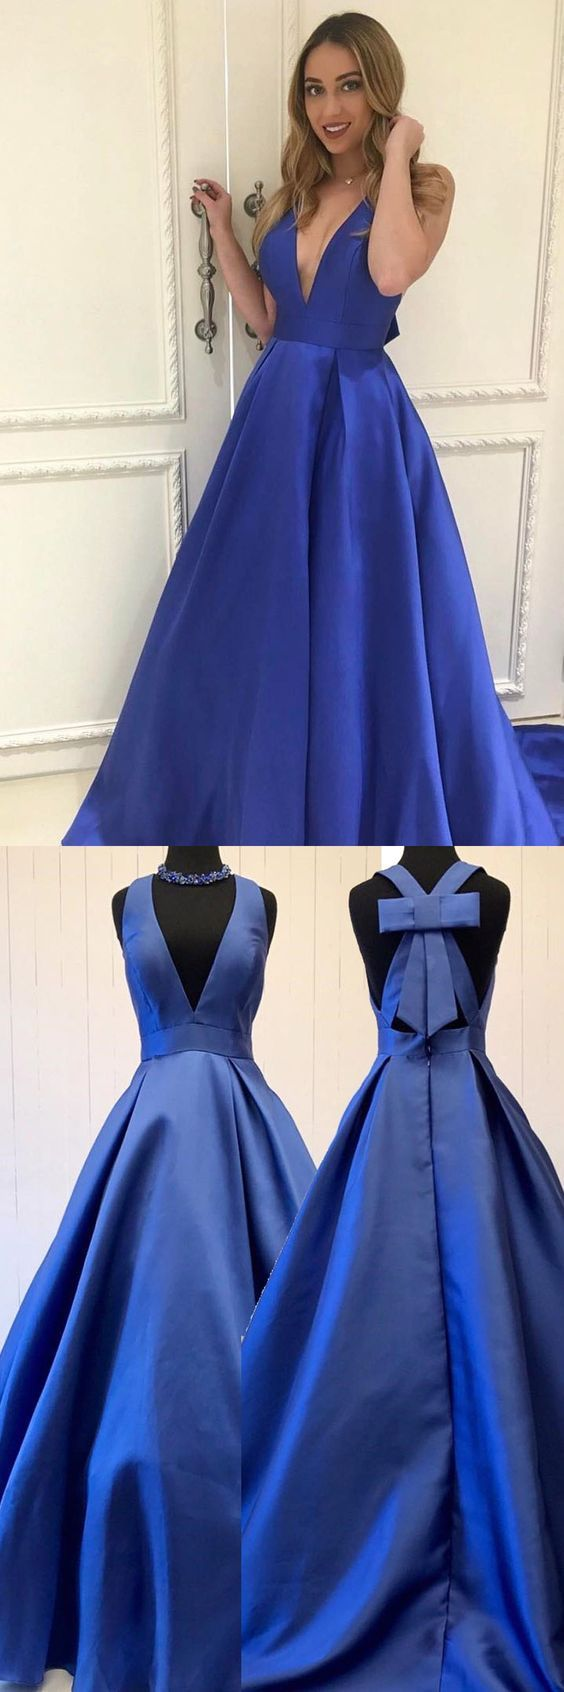 A line blue vneck long prom dresses with open backed in